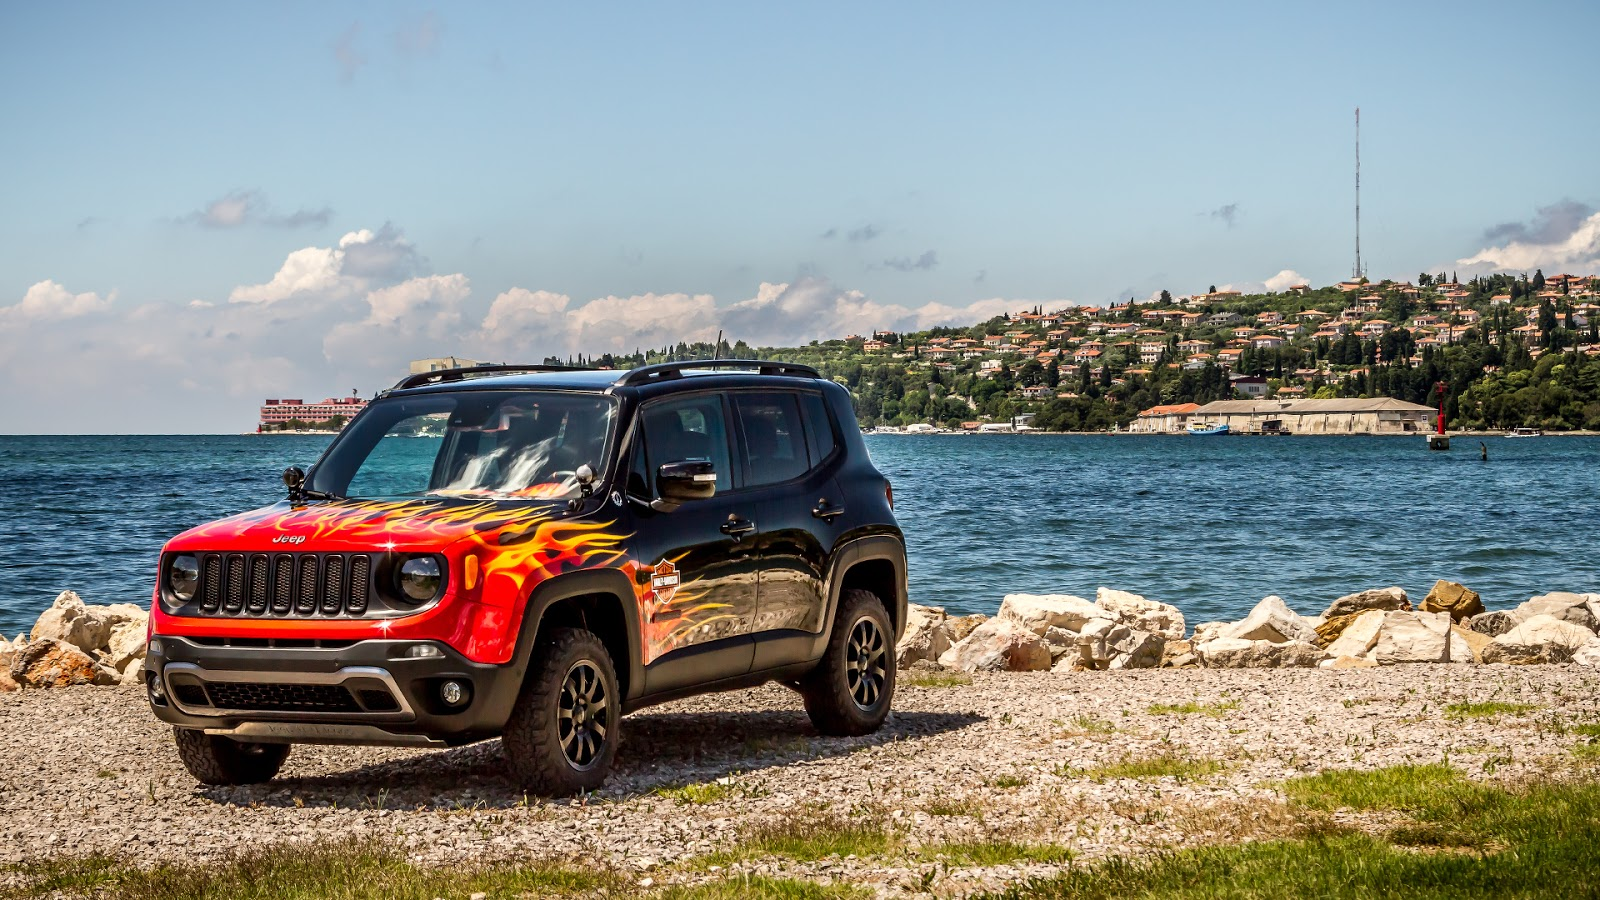 Renegade Race Fuel >> This Jeep Renegade is Flaming Hot, Celebrates 25th European H.O.G. Rally - autoevolution